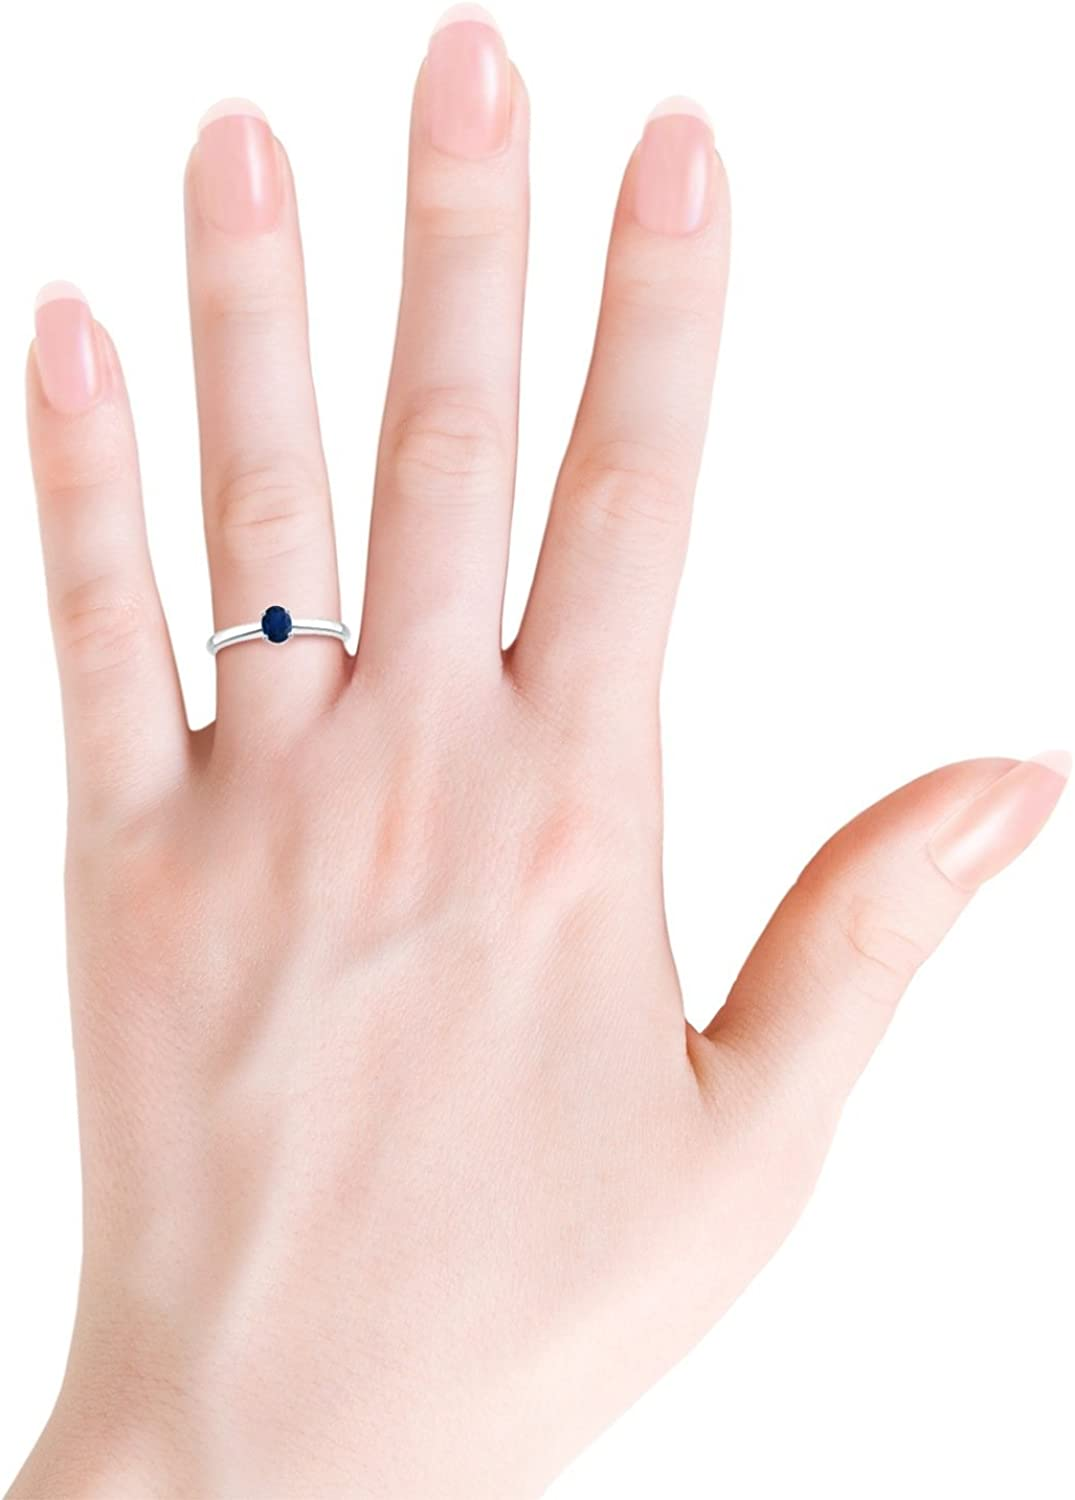 Classic Solitaire Oval Blue Sapphire Promise Ring 5x4mm Blue Sapphire